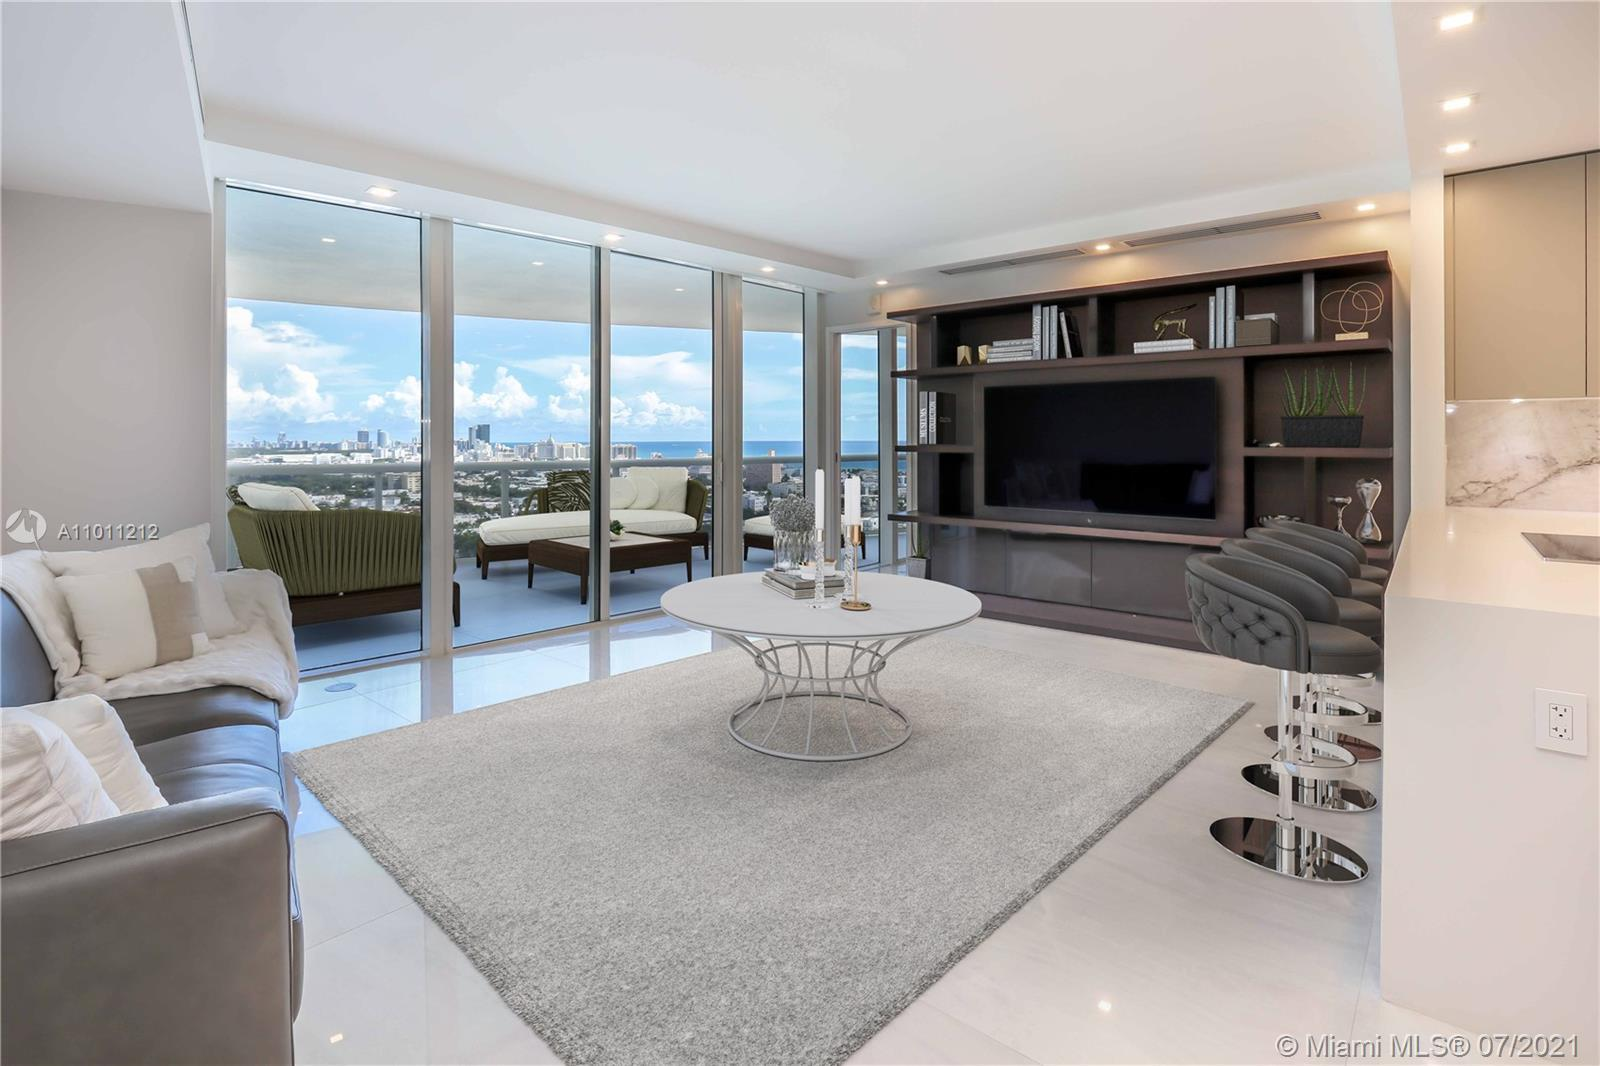 Absolutely STUNNING 2 bedroom residence at Murano Grande. This unit was completely gut renovated les